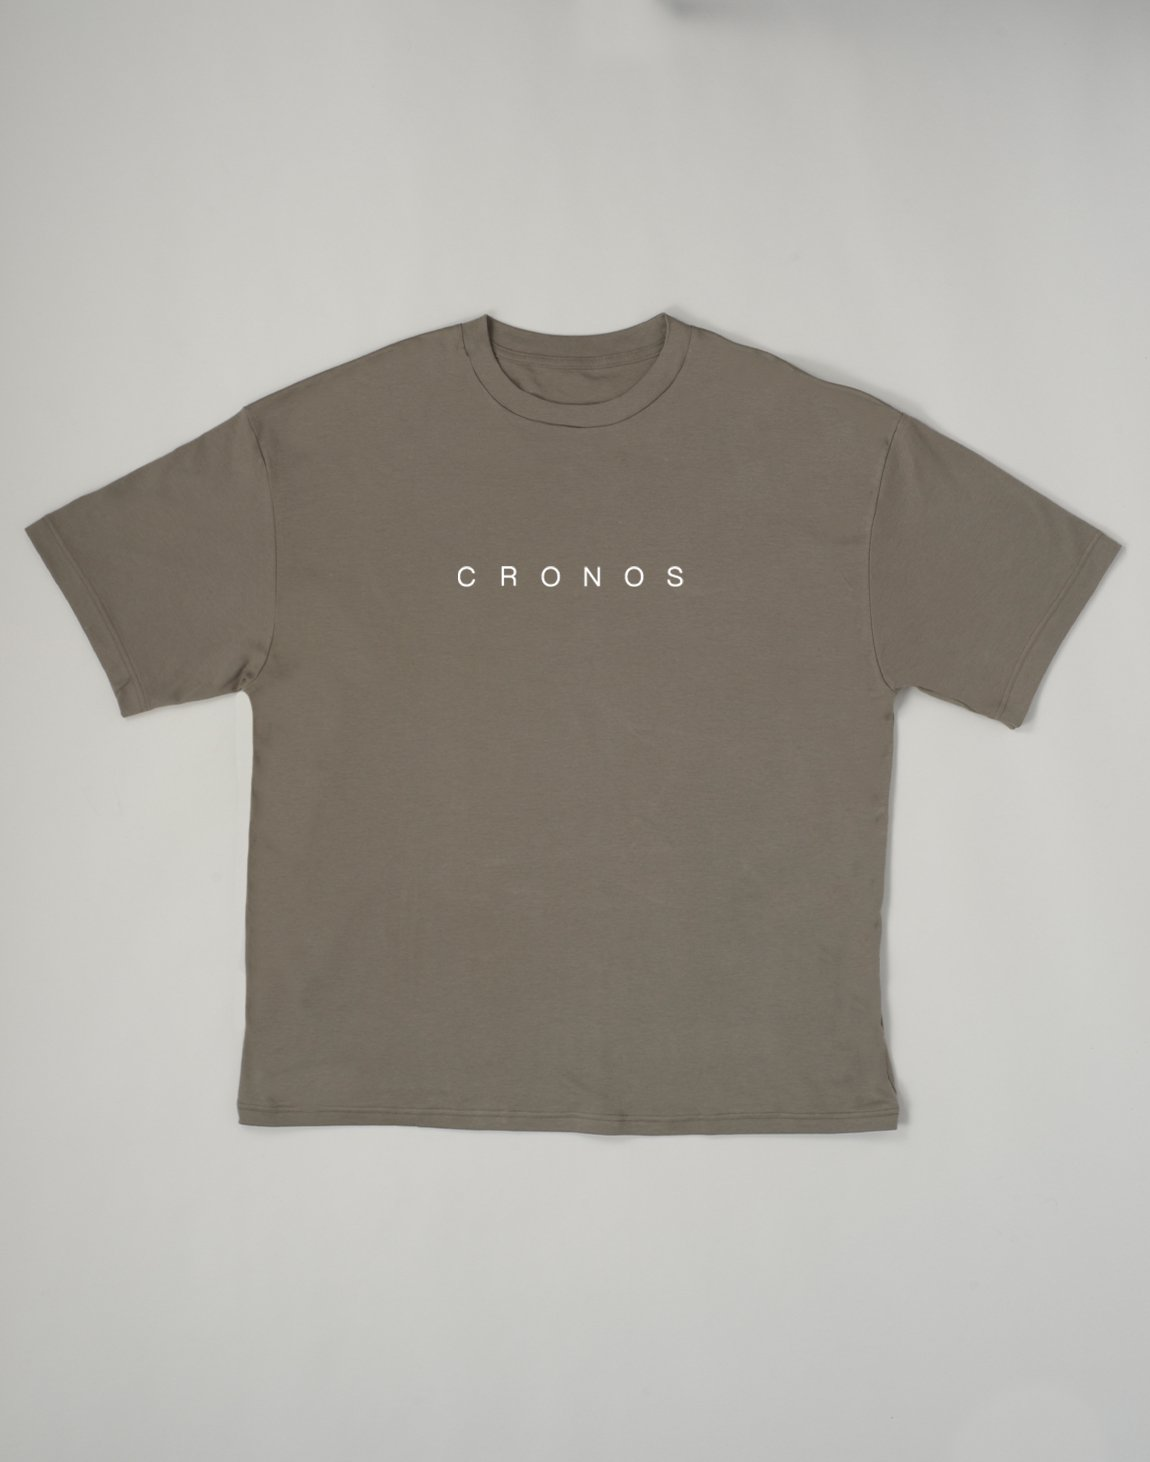 <img class='new_mark_img1' src='https://img.shop-pro.jp/img/new/icons1.gif' style='border:none;display:inline;margin:0px;padding:0px;width:auto;' />CRONOS NEW FONT LOGO OVER SIZE T-SHIRTS【KHAKI】